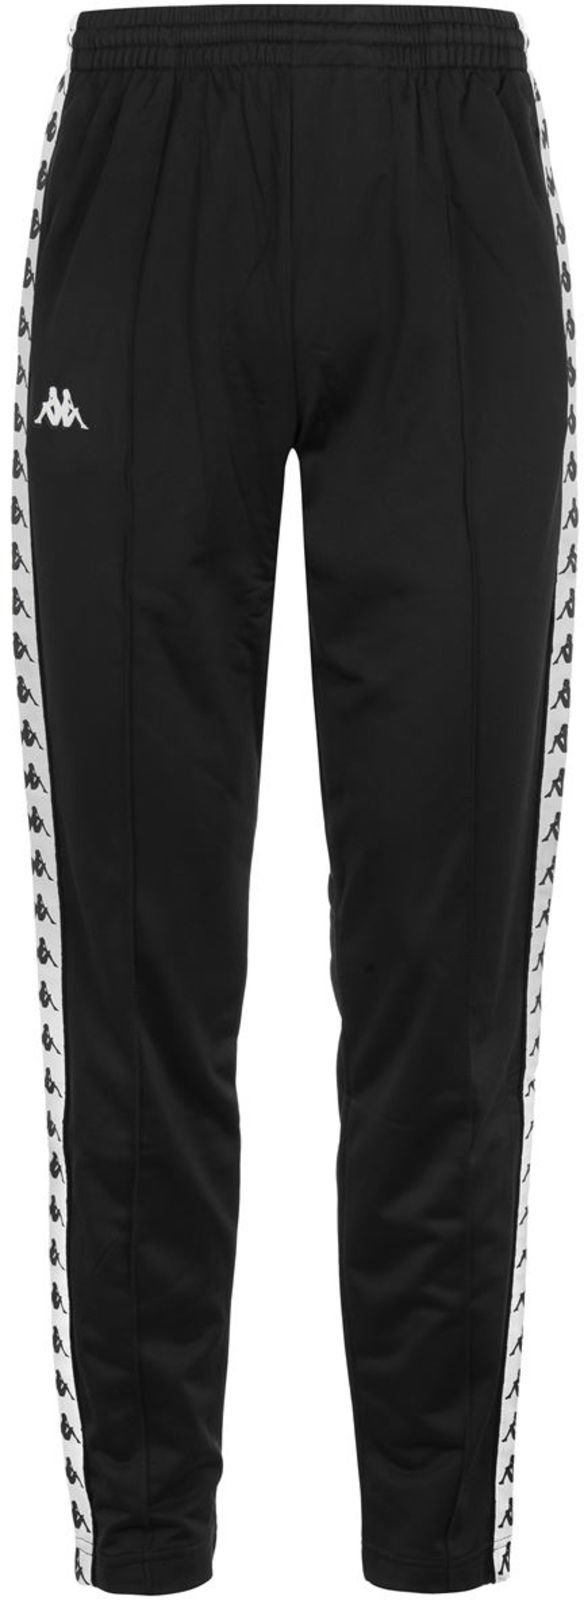 Kappa Astoria Slim Fit Track Pants Black